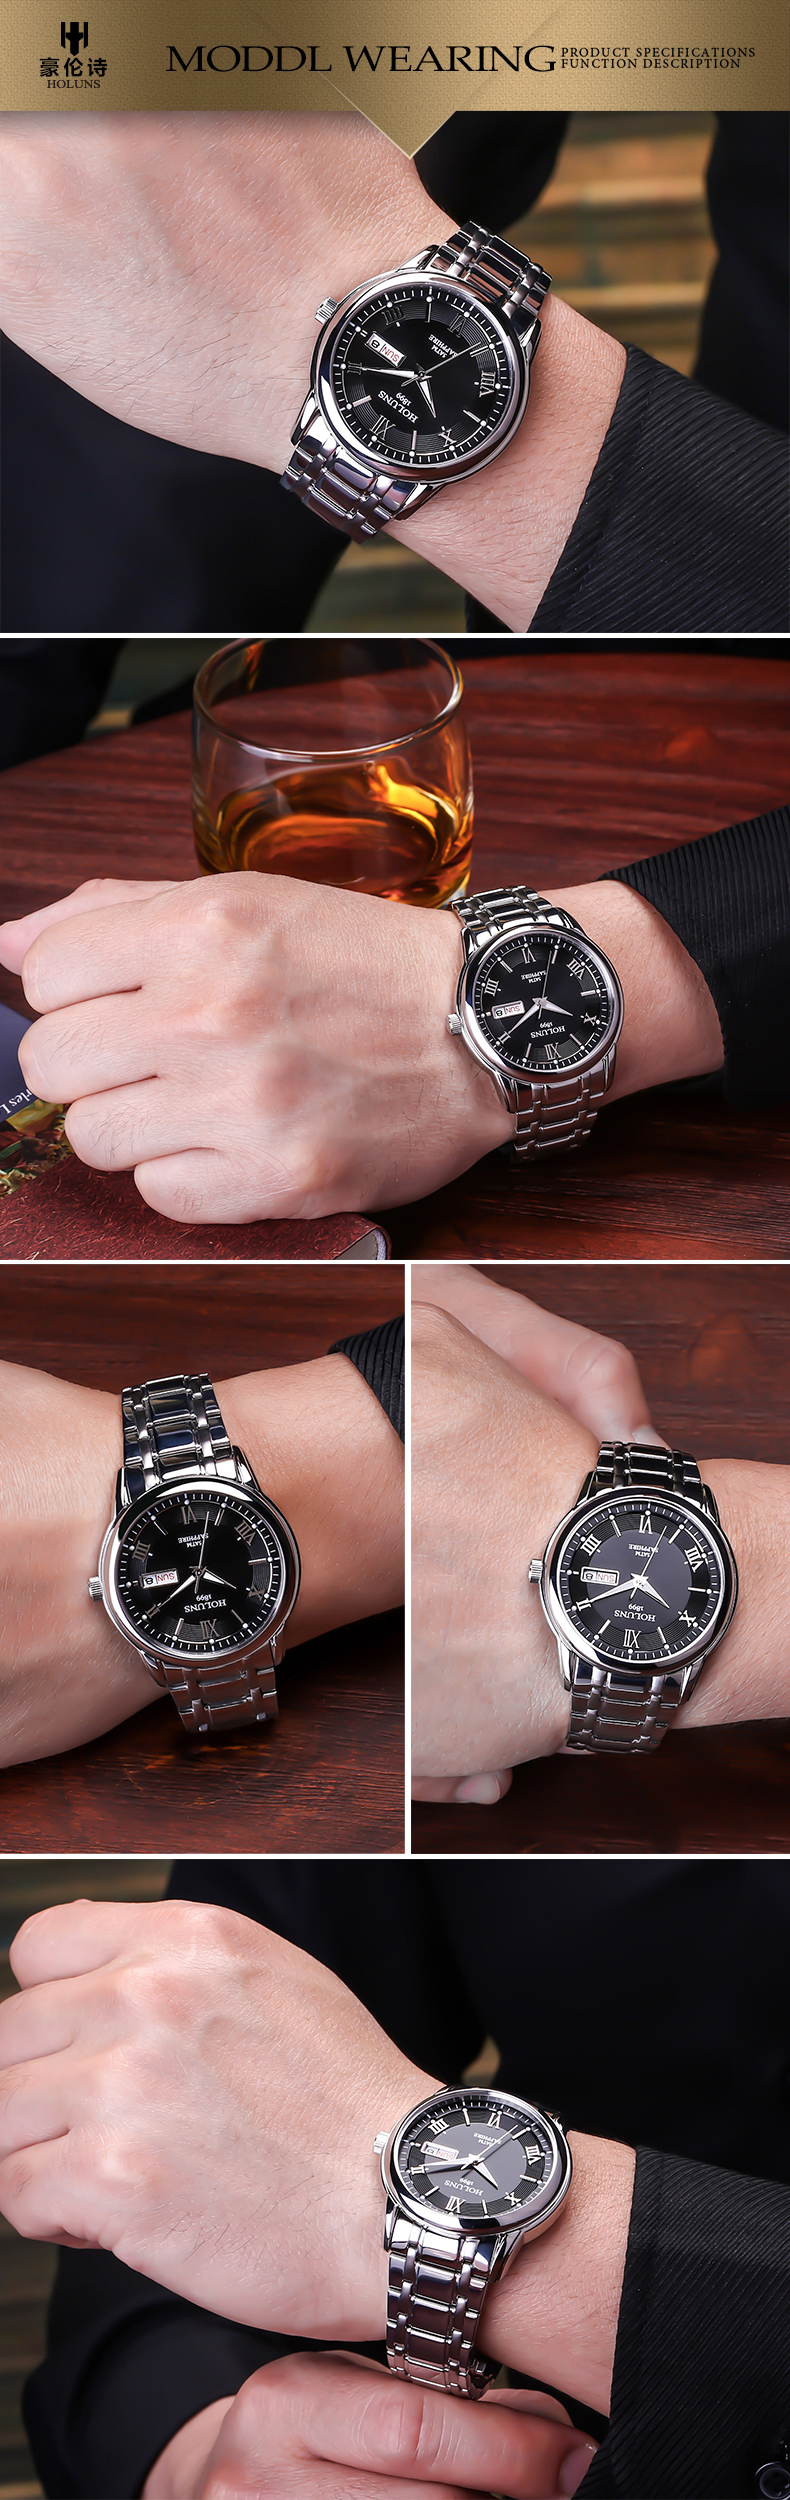 HTB1v5bHck9E3KVjSZFGq6A19XXae HOLUNS relogio masculino full stainless steel men automatic watch top brand luxury 5ATM waterproof Super luminous dropshipping